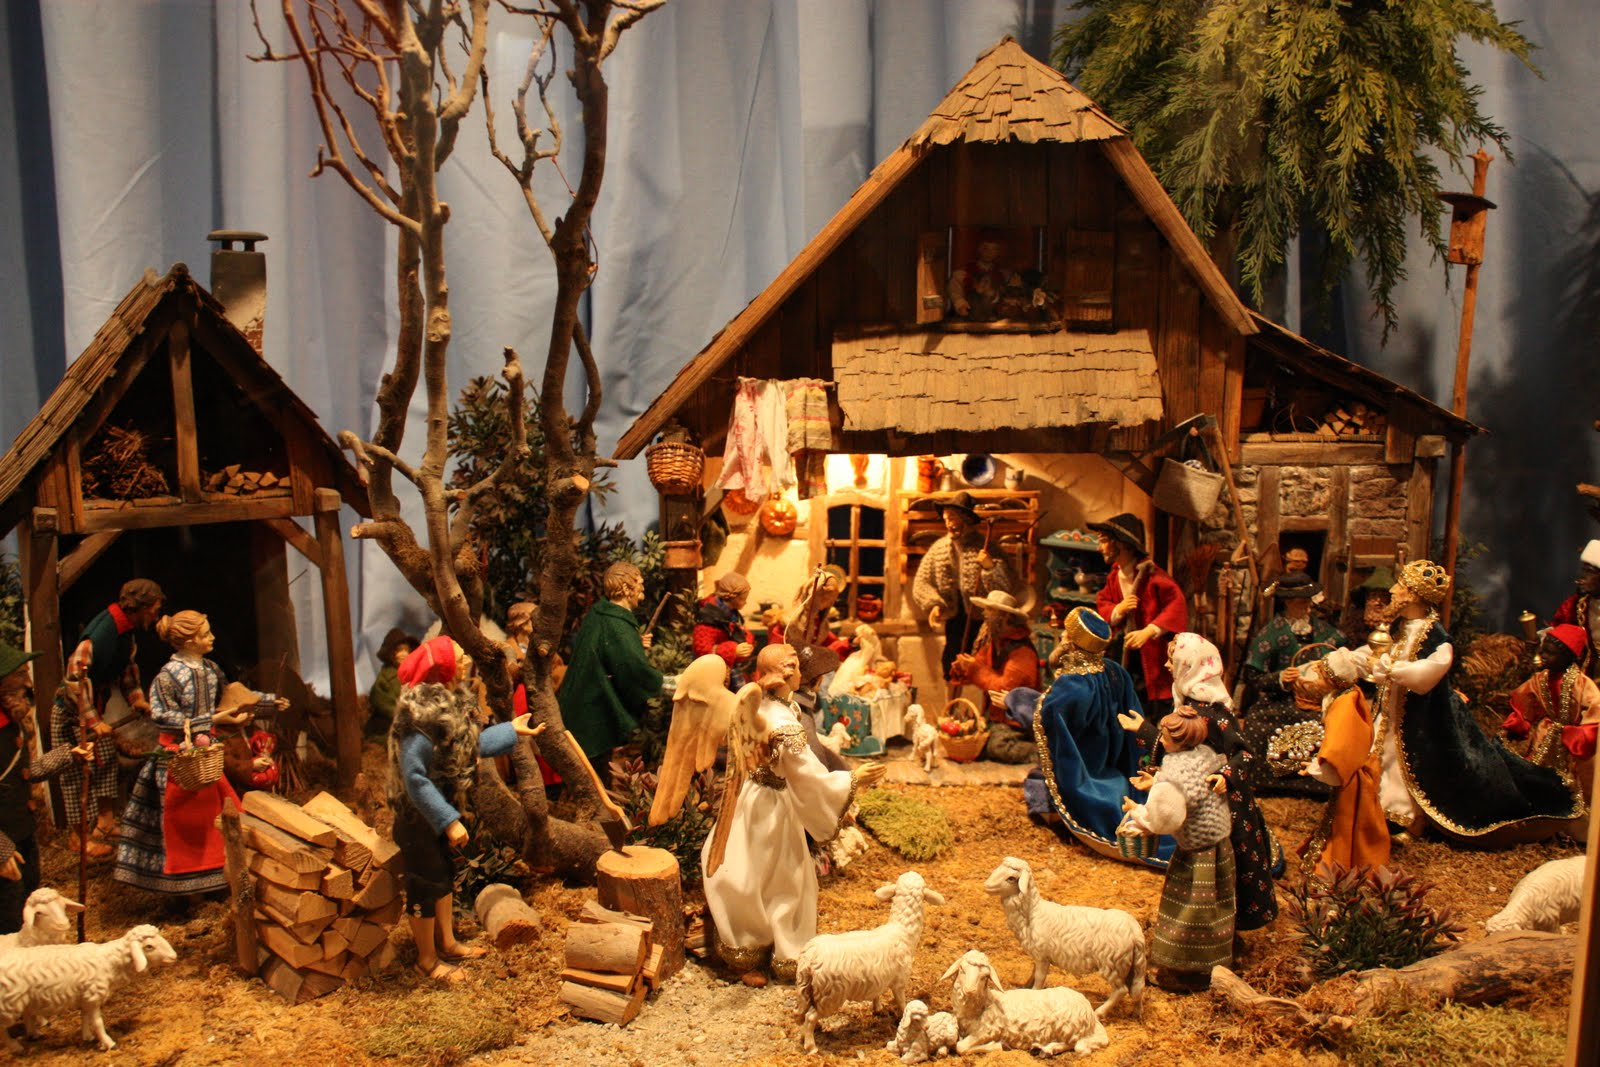 This nativity scene from the town of Oberammergau is set in the